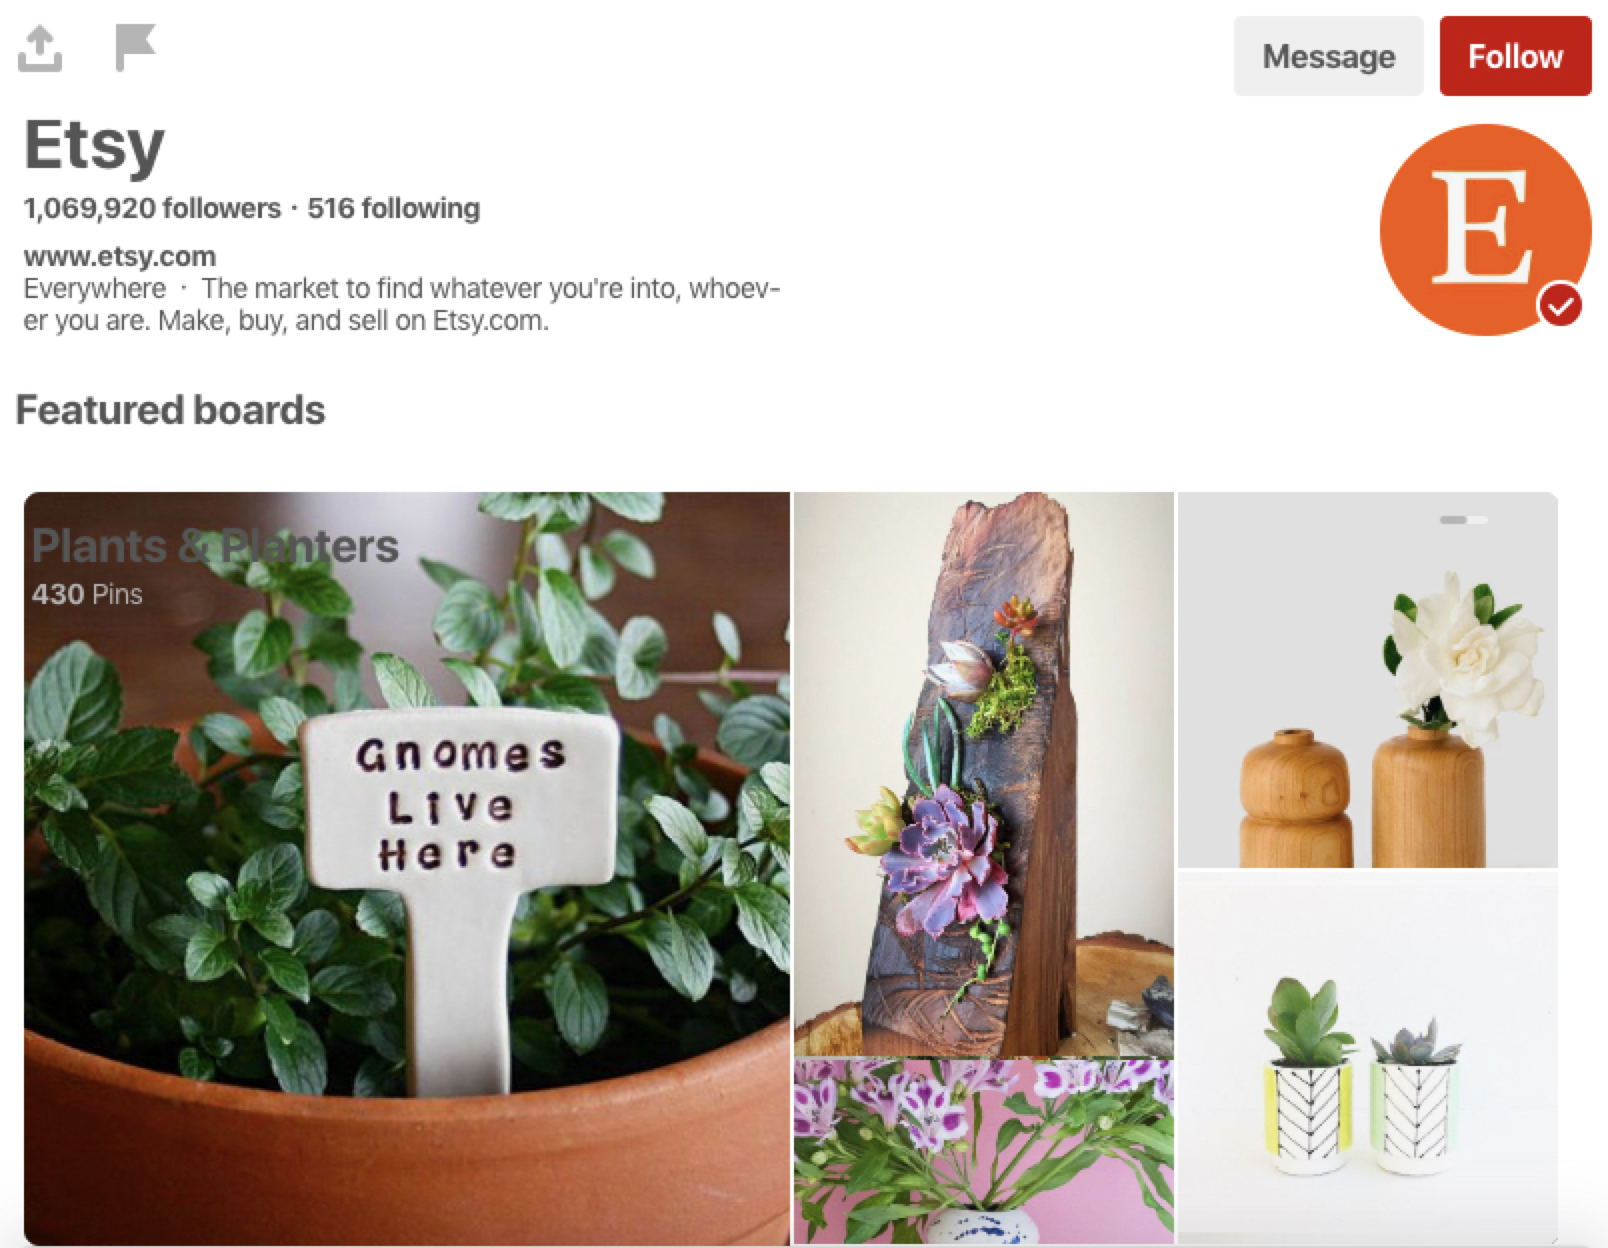 Etsy's Pinterest profile